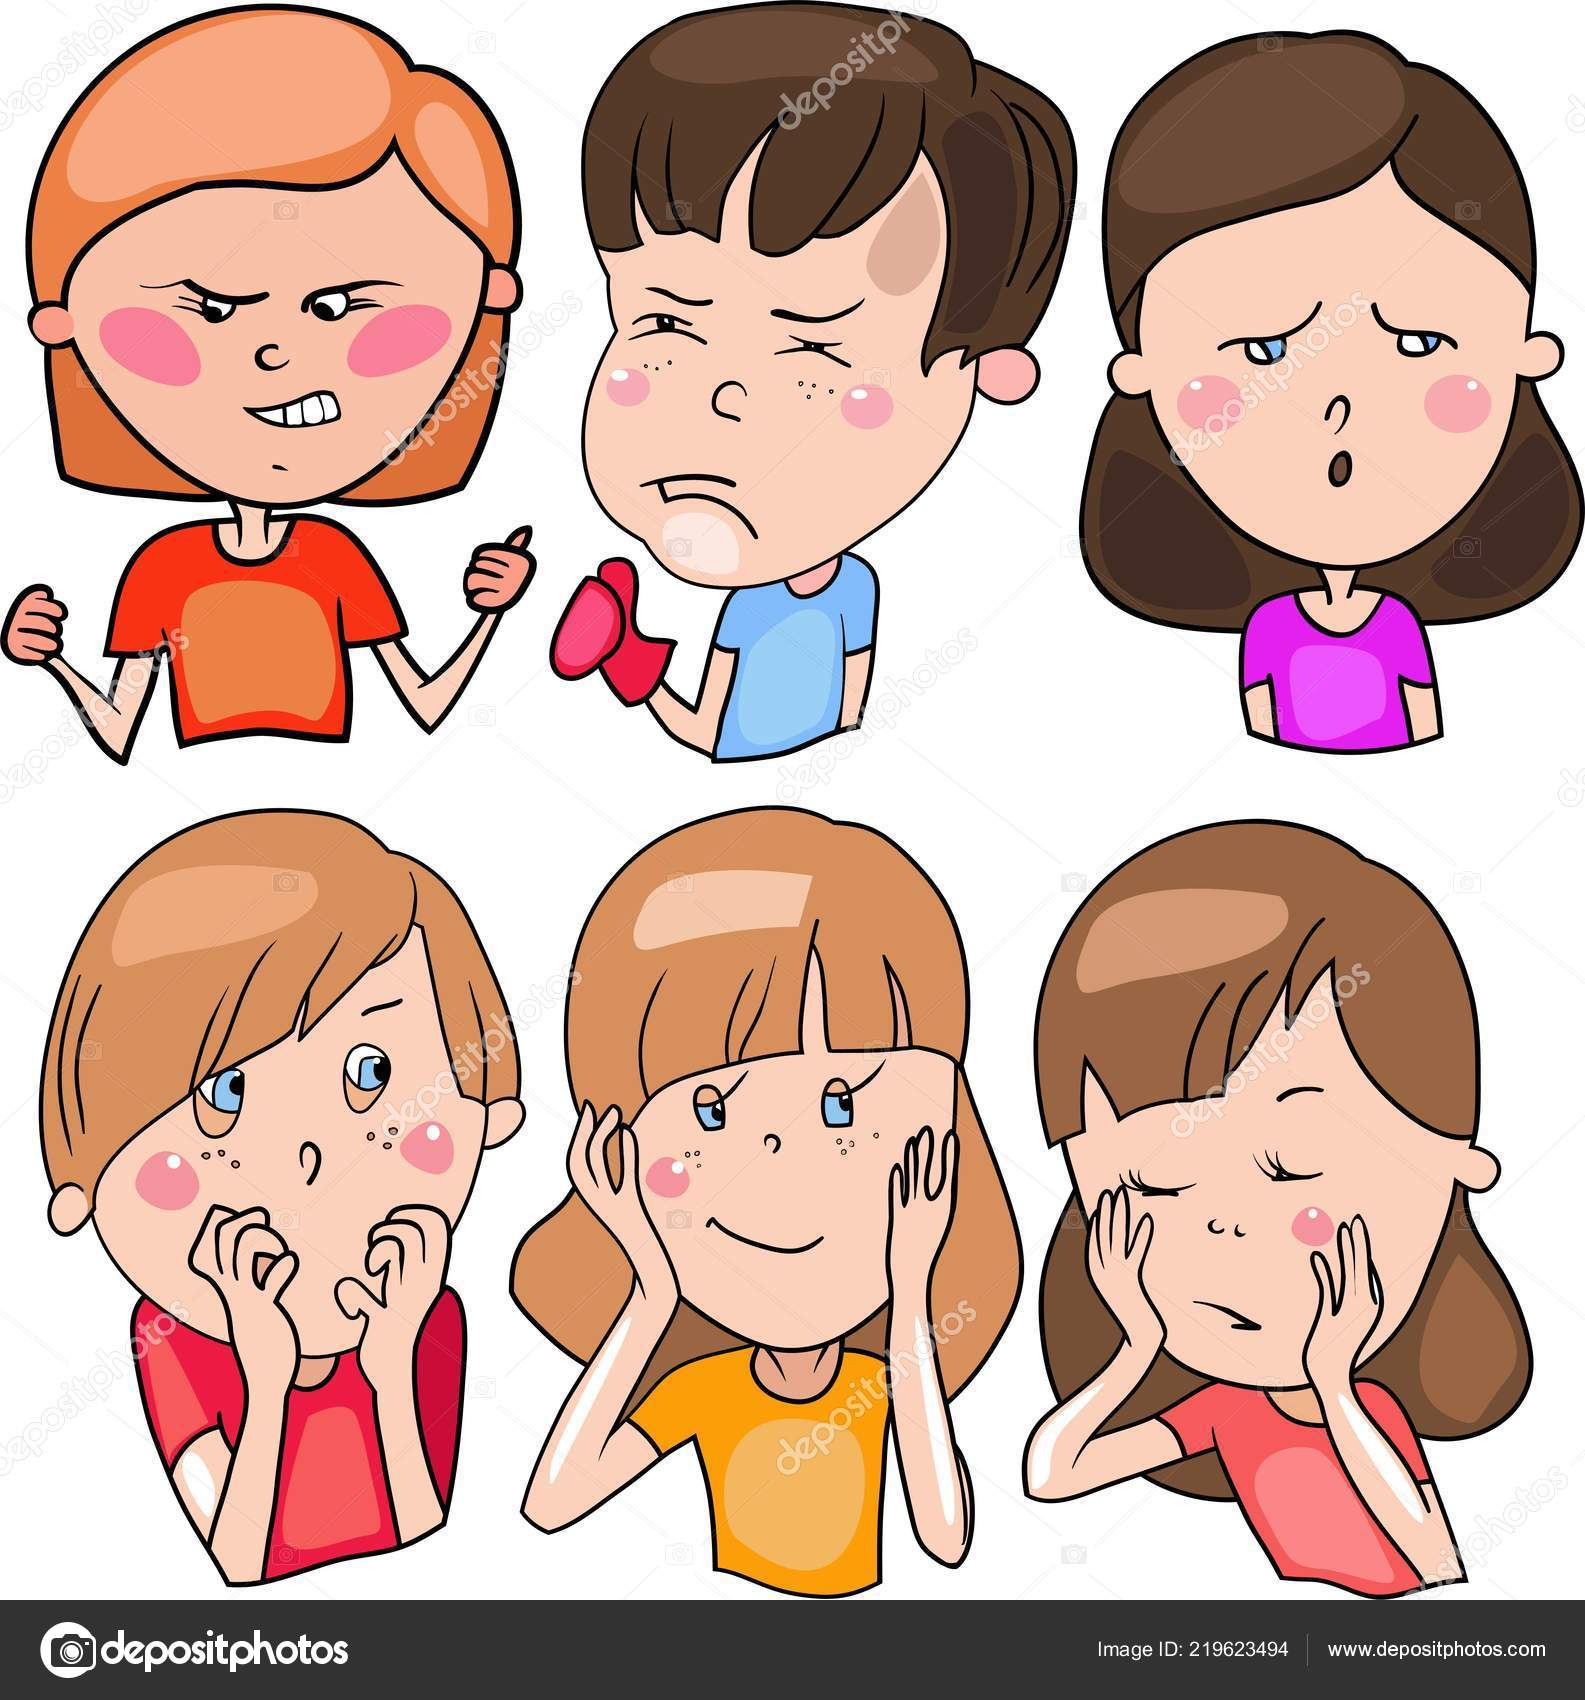 Drawings Cartoon Style Set Includes Color Drawings Vector